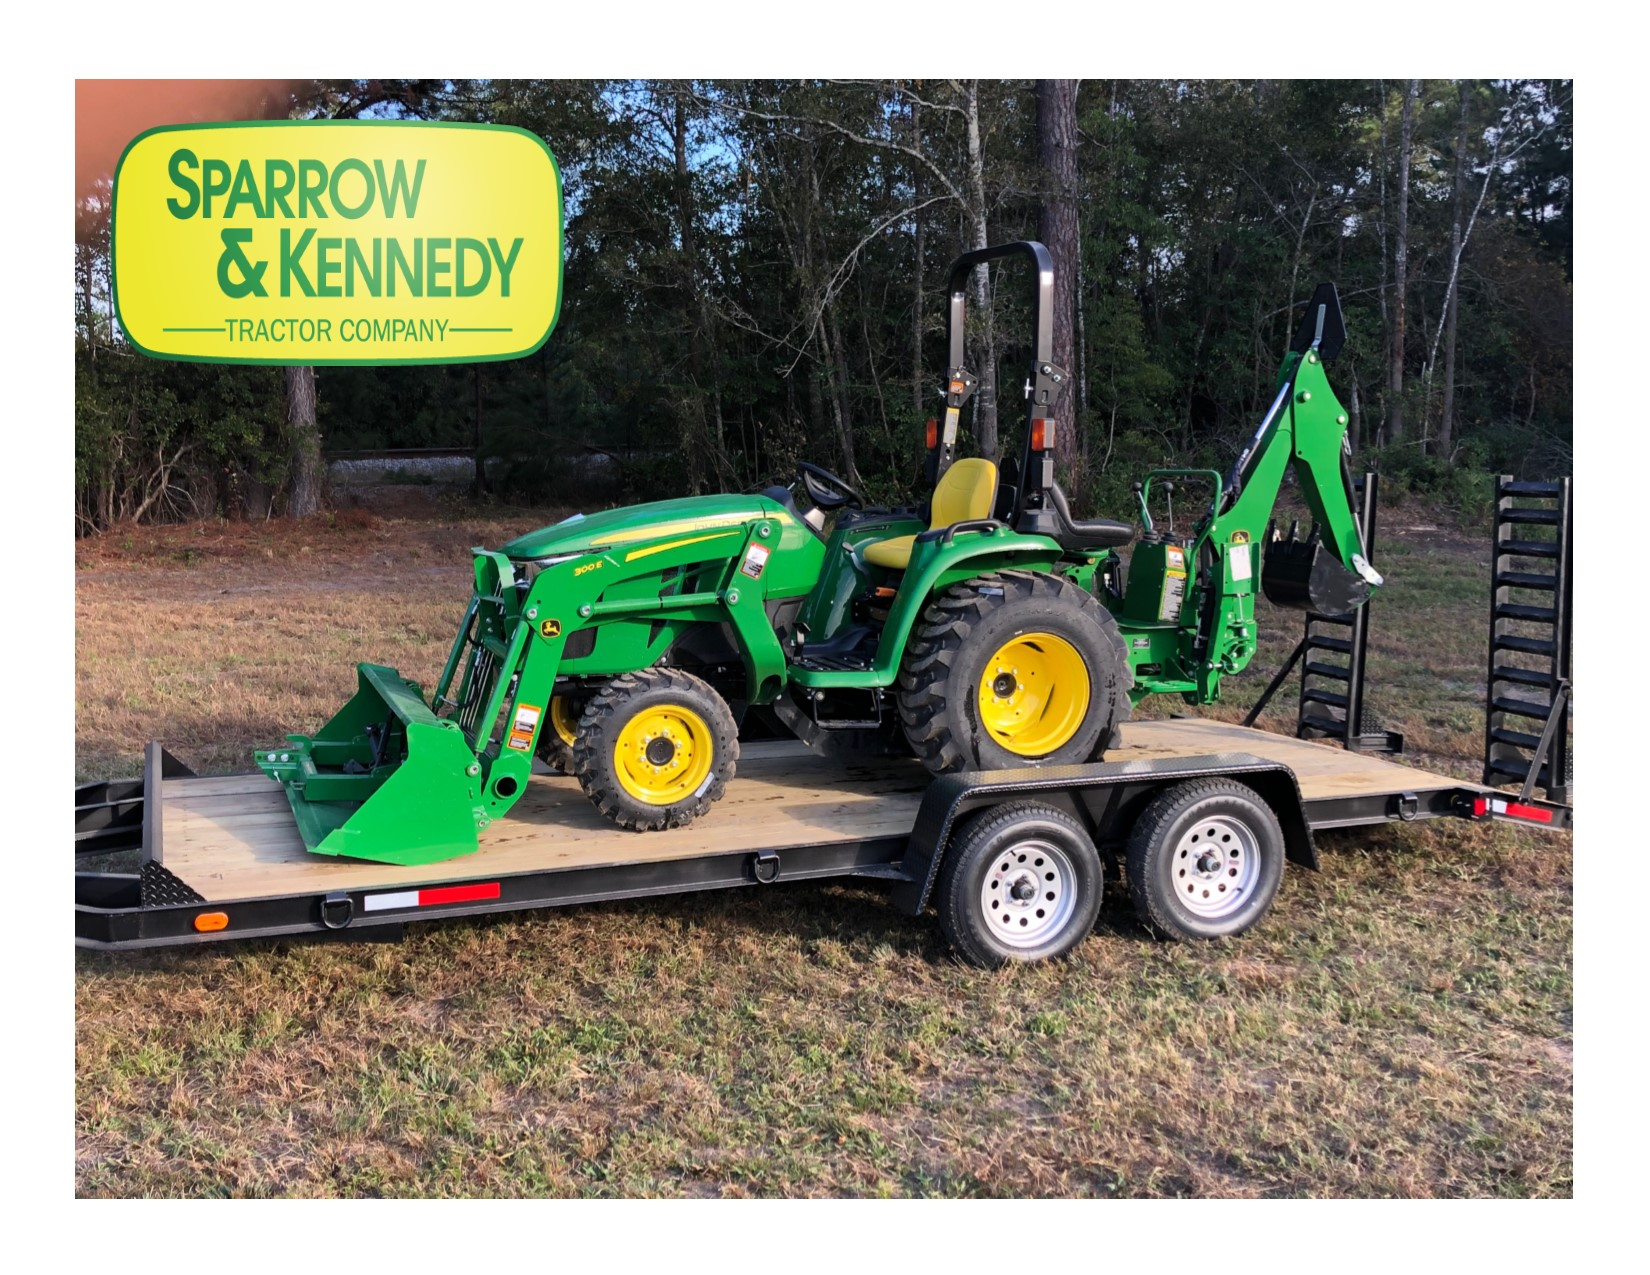 Sparrow Kennedy Tractor Packages With Unique Attachments To Perform A Variety Of Tasks On Your Farm Lawn Or Territory Bishopville Manning Moncks Corner Scranton Timmonsville Lexington Johns Island South Carolina